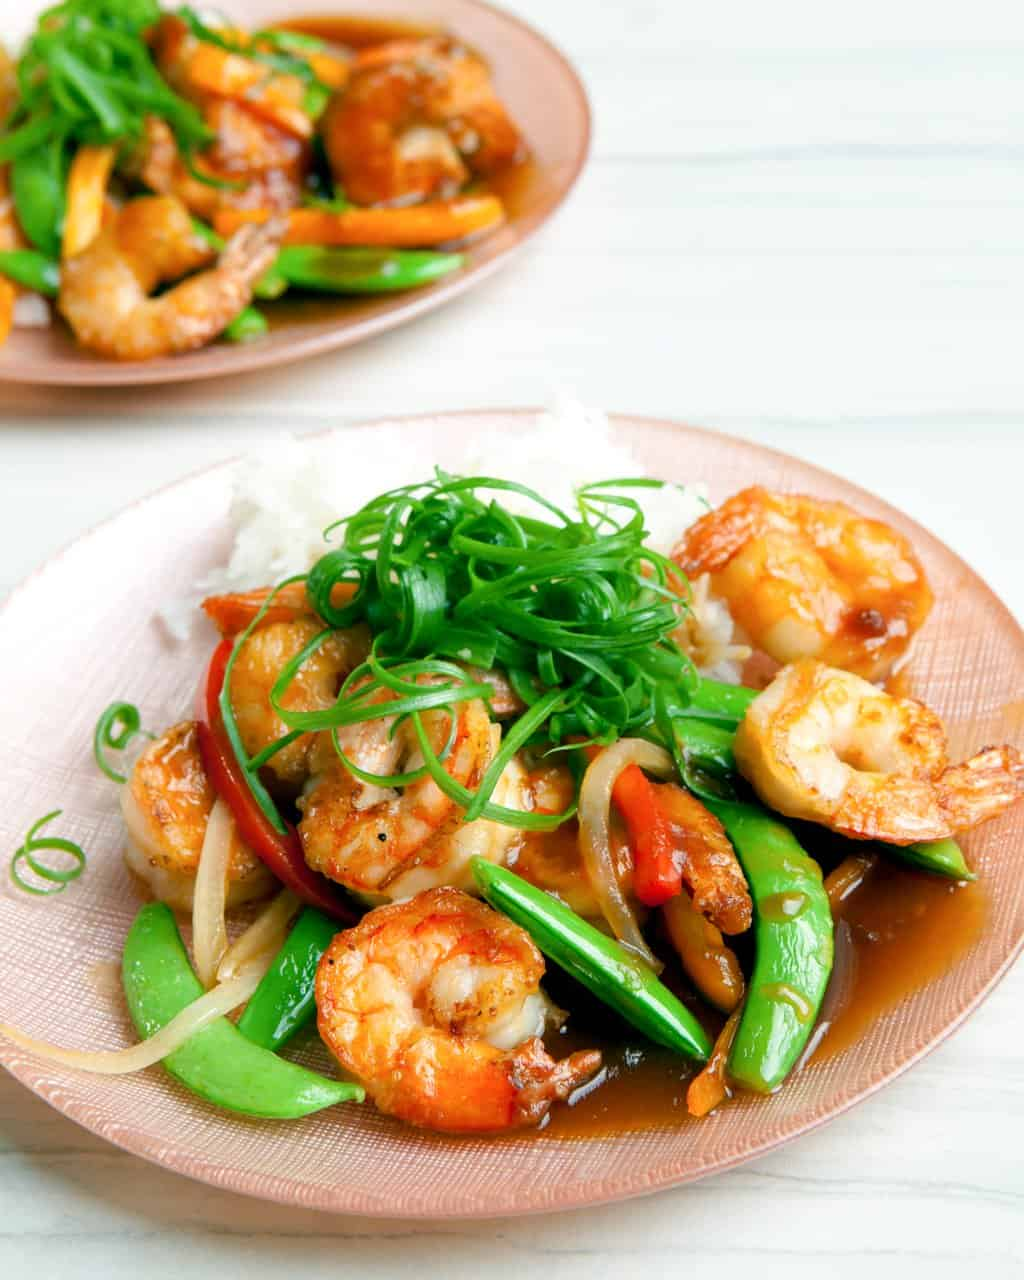 Shrimp Teriyaki Stir Fry Recipe